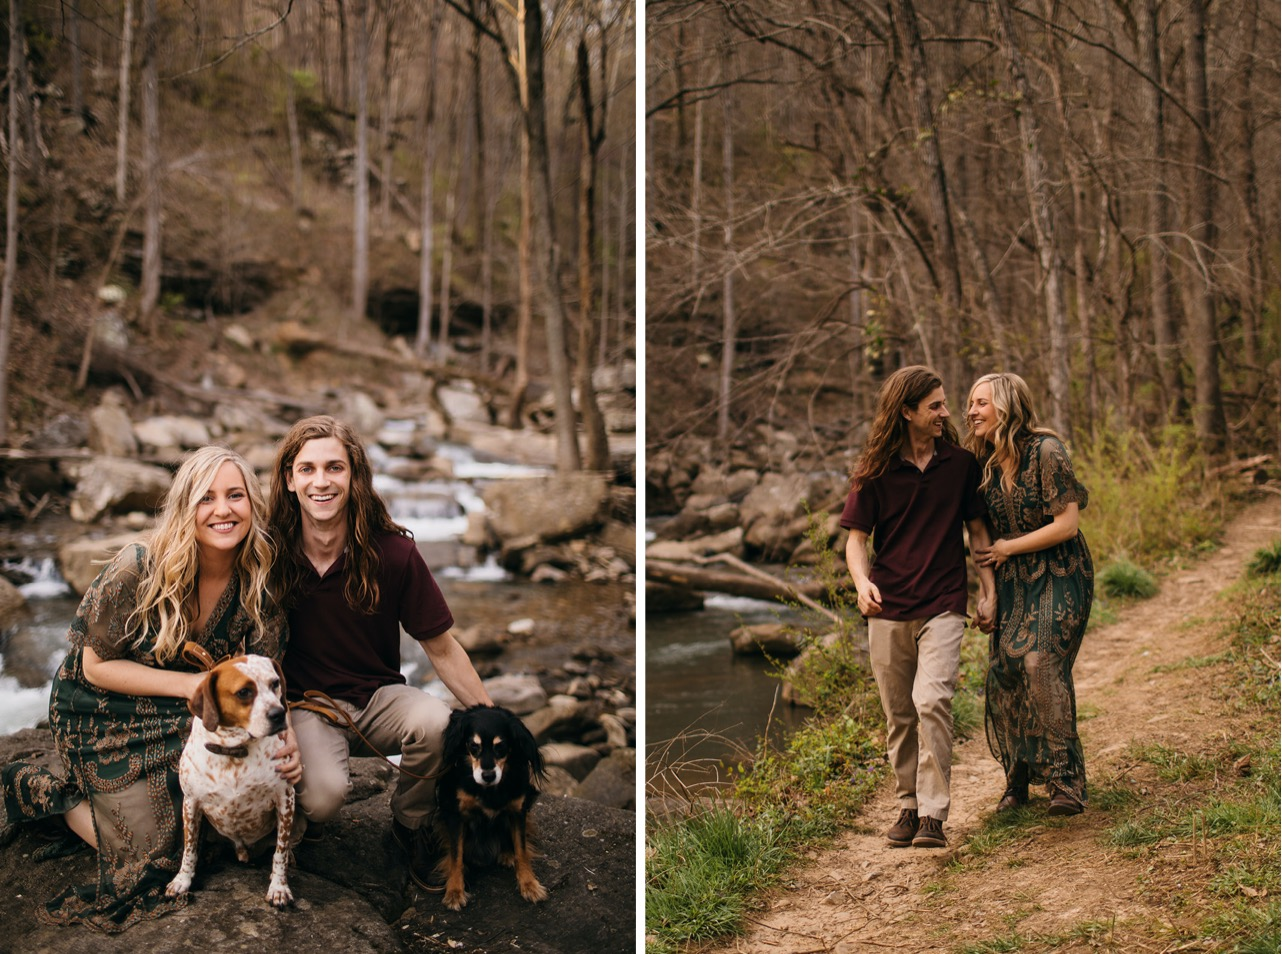 An engaged couple poses with their brown and white speckled dog in front of Middle Creek.